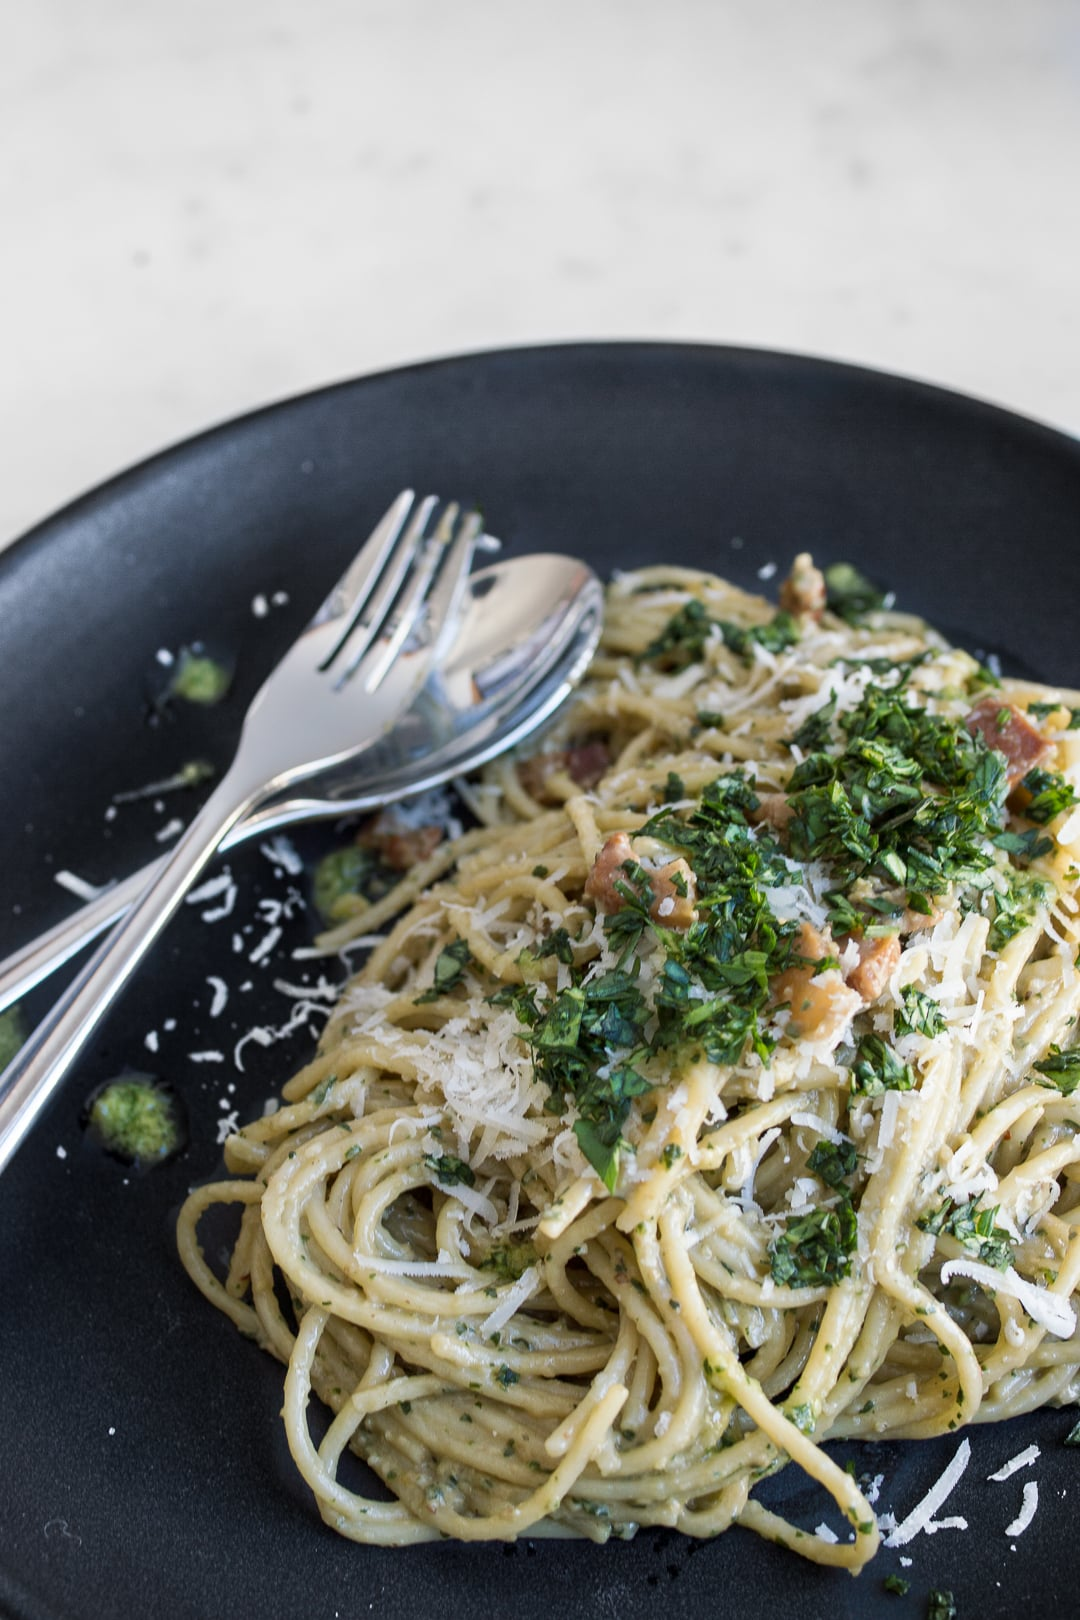 Close-up of Pesto Carbonara, topped with chopped basil and parmesan cheese, on a black plate with fork and spoon.